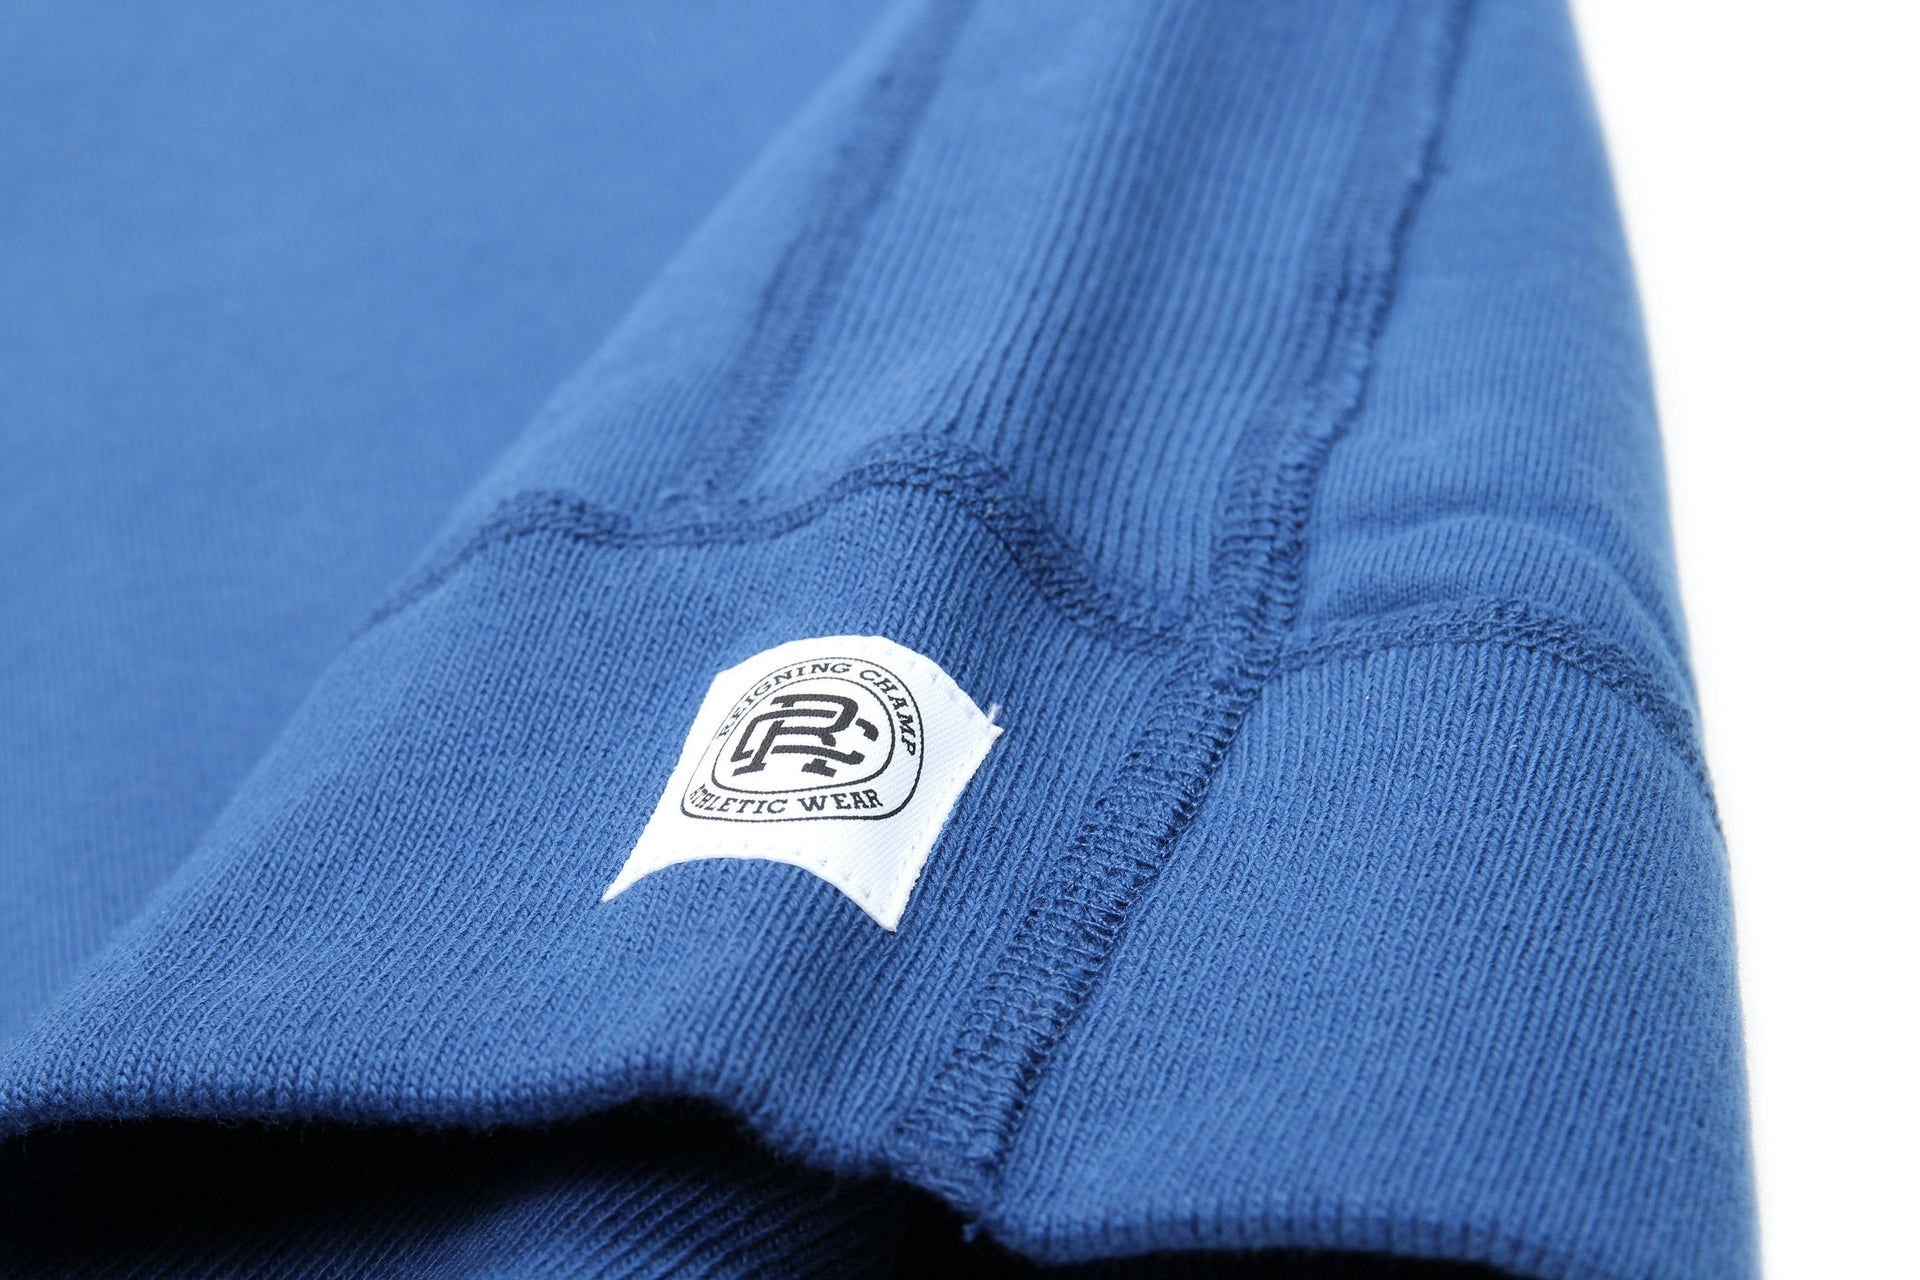 COURT BLUE/WHITE KNIT MID WT TERRY VARSITY CREWNECK RC-3480 MENS SOFTGOODS REIGNING CHAMP